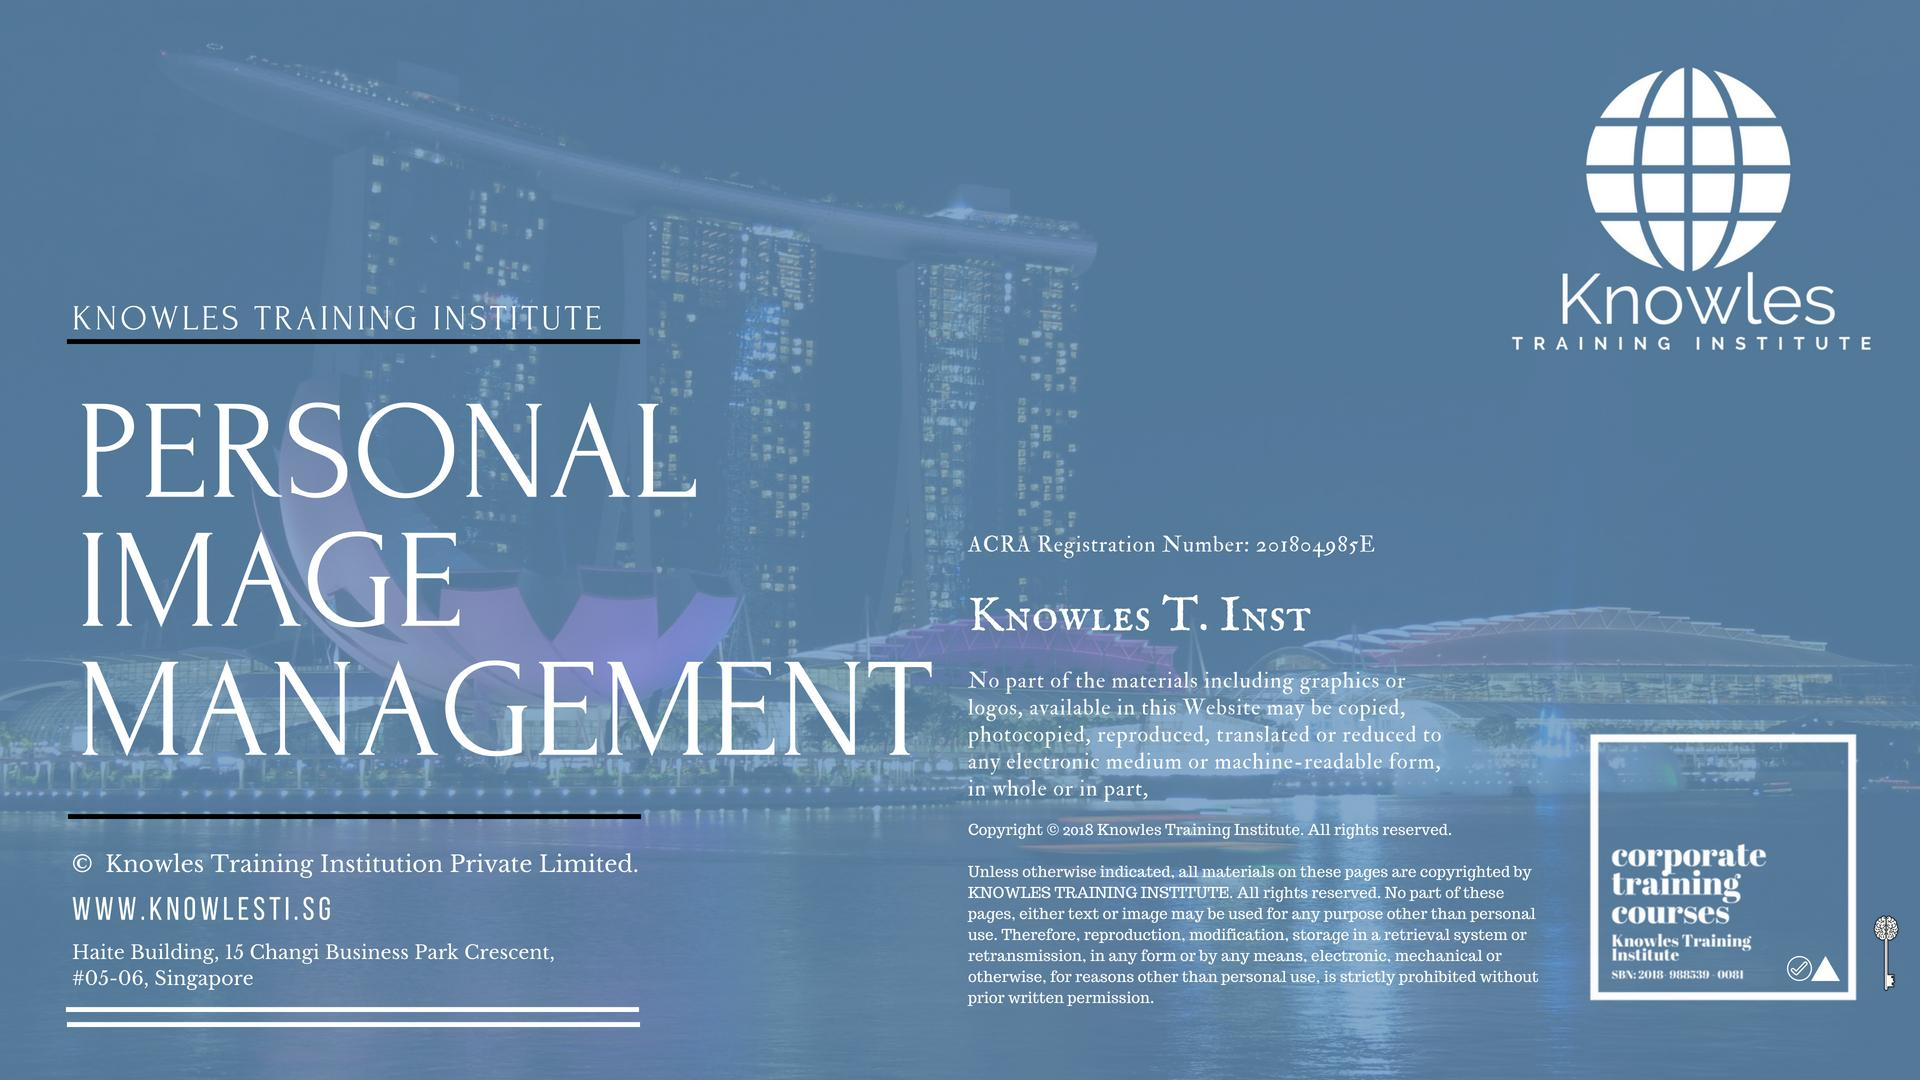 Personal Image Management Course In Singapore